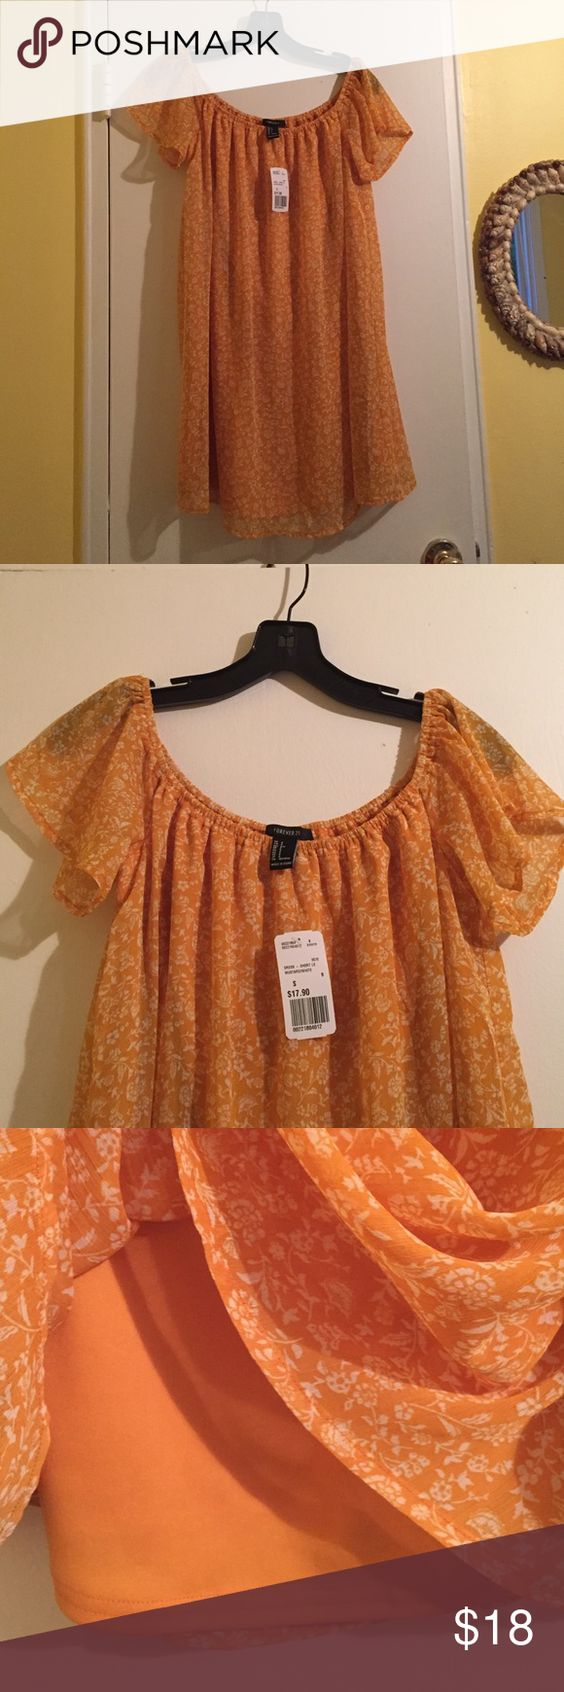 NWT forever 21 dress Short floral mustard and white dress. Loose fitting. Can be worn off the shoulder. Size small but fits like a medium. Just purchased on 5/25 never worn. Forever 21 Dresses Mini